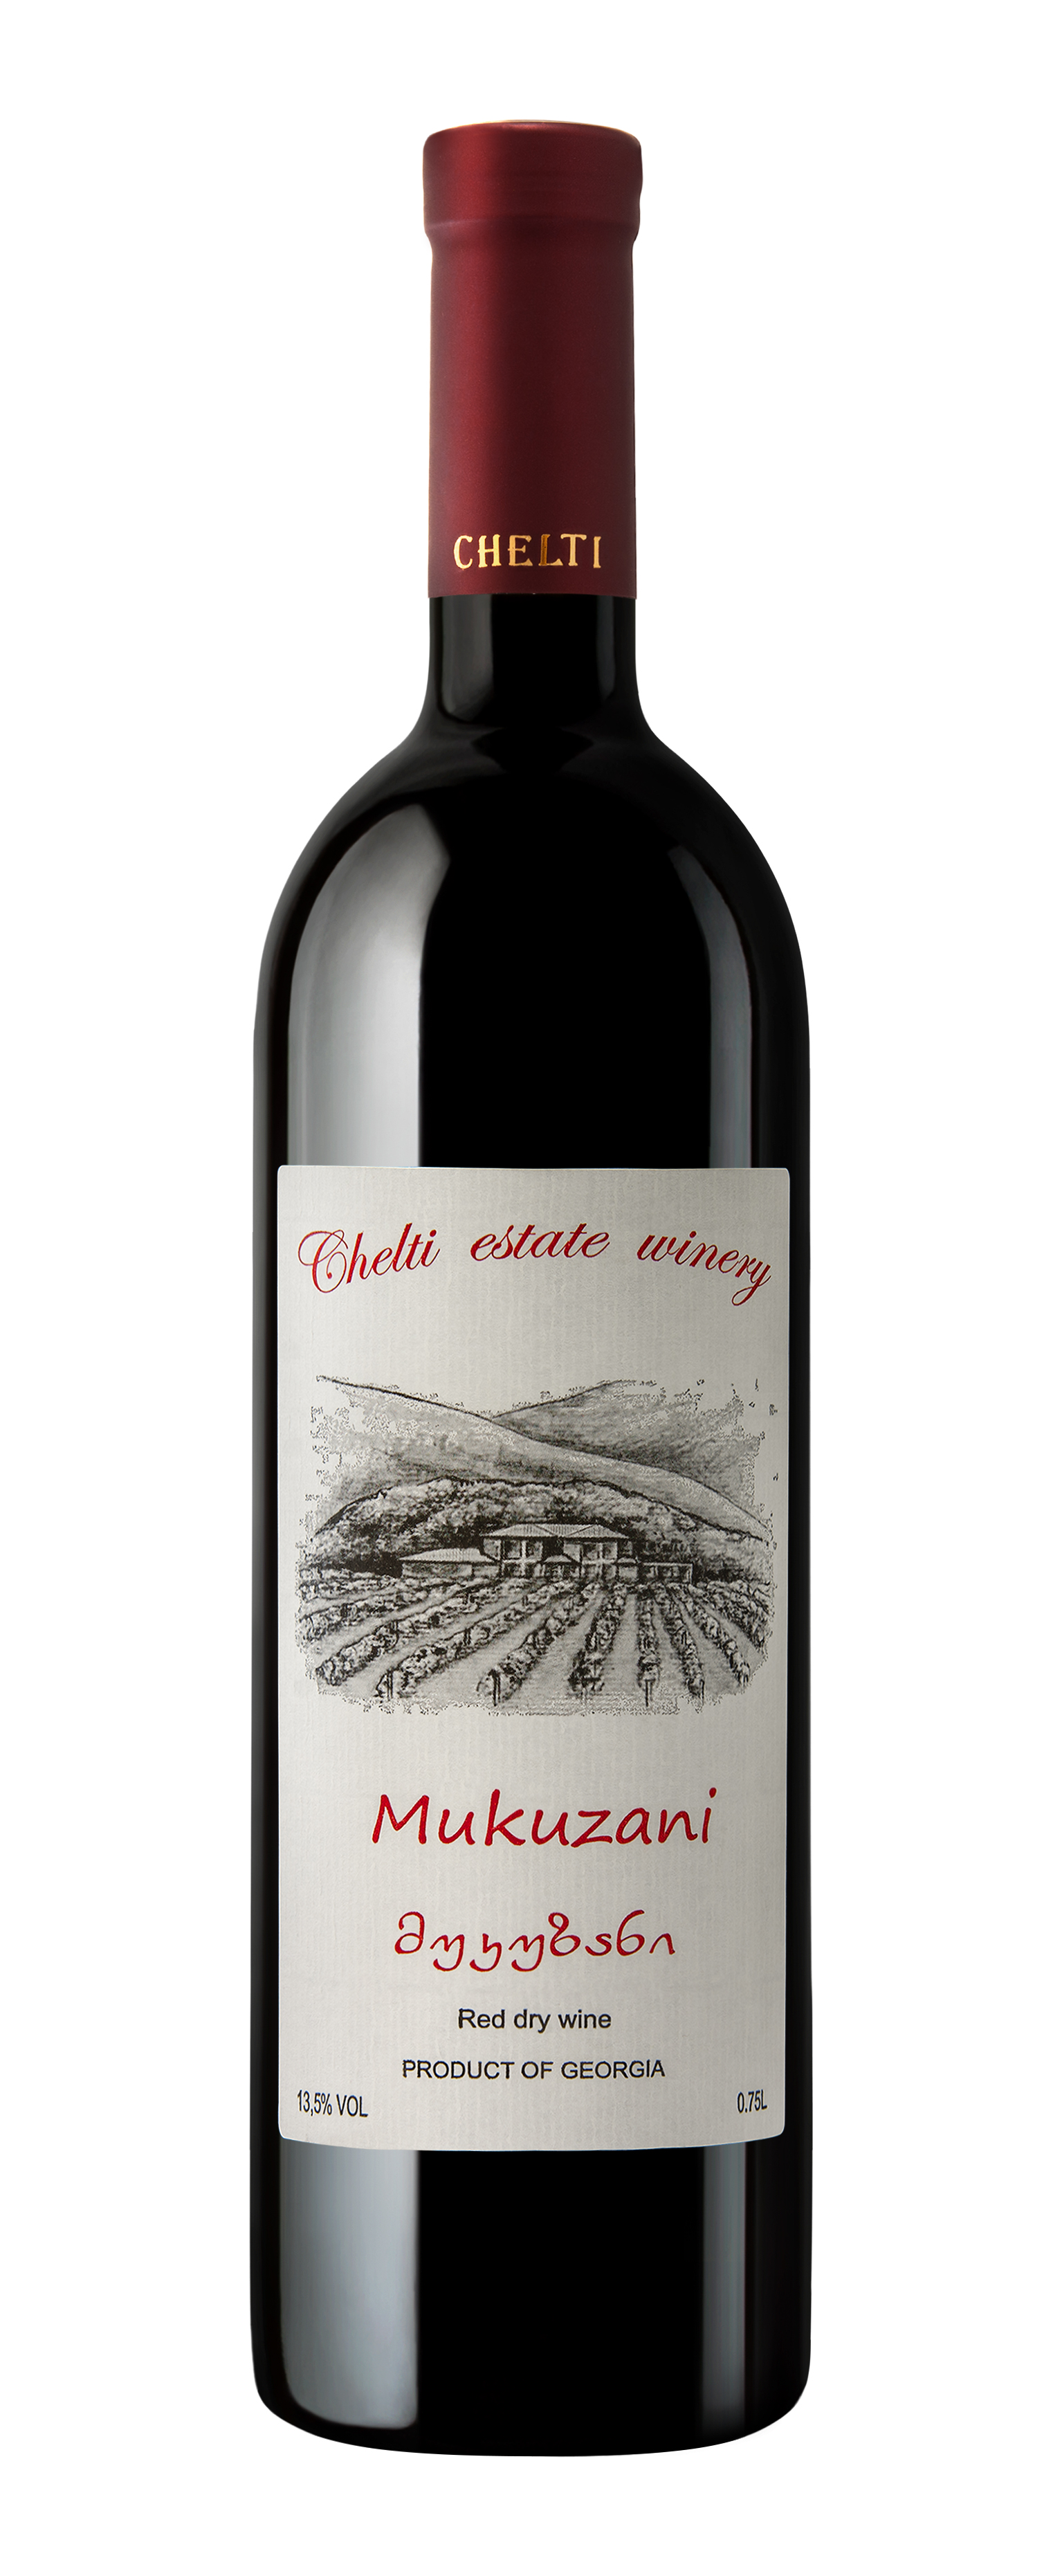 Mukuzani 2015 - Saperavi – Red Dry – Alcohol: 14.0% – Volume: 0.75 LThe wine is made at Chelti Vineyards from Saperavi grape variety grown in the Mukuzani micro zone. The wine has a flavor traditional to this strain with notes of ripe cherries, almonds and vanilla. The taste of tannins is delicious combined with notes of oak, with a long finish.